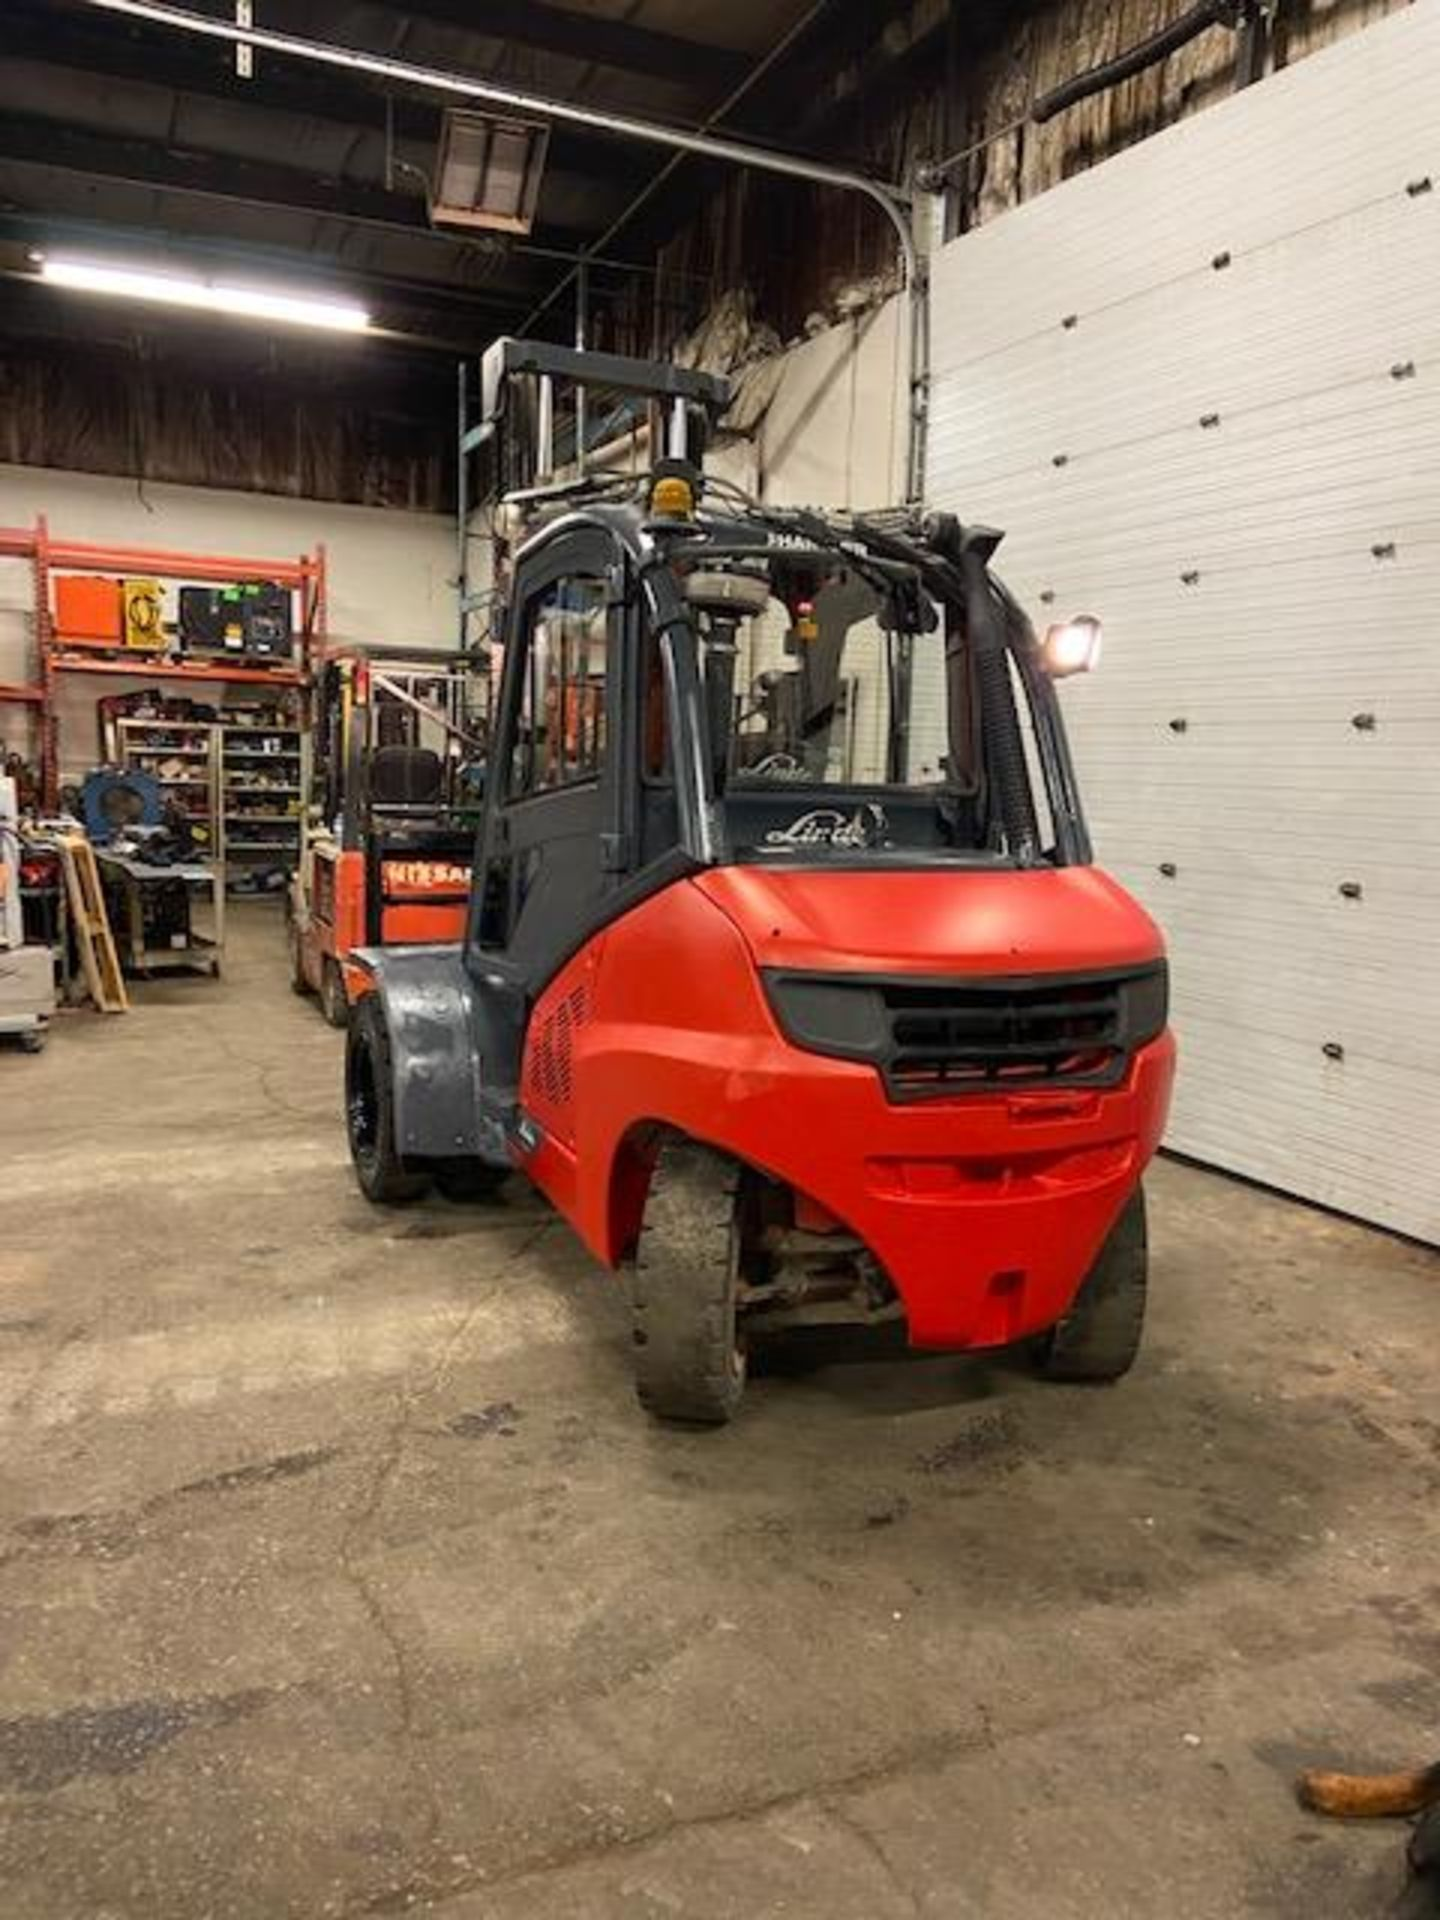 FREE CUSTOMS - 2012 Linde 10,000lbs OUTDOOR Forklift with NICE CAB & sideshift & fork positioner - Image 4 of 5